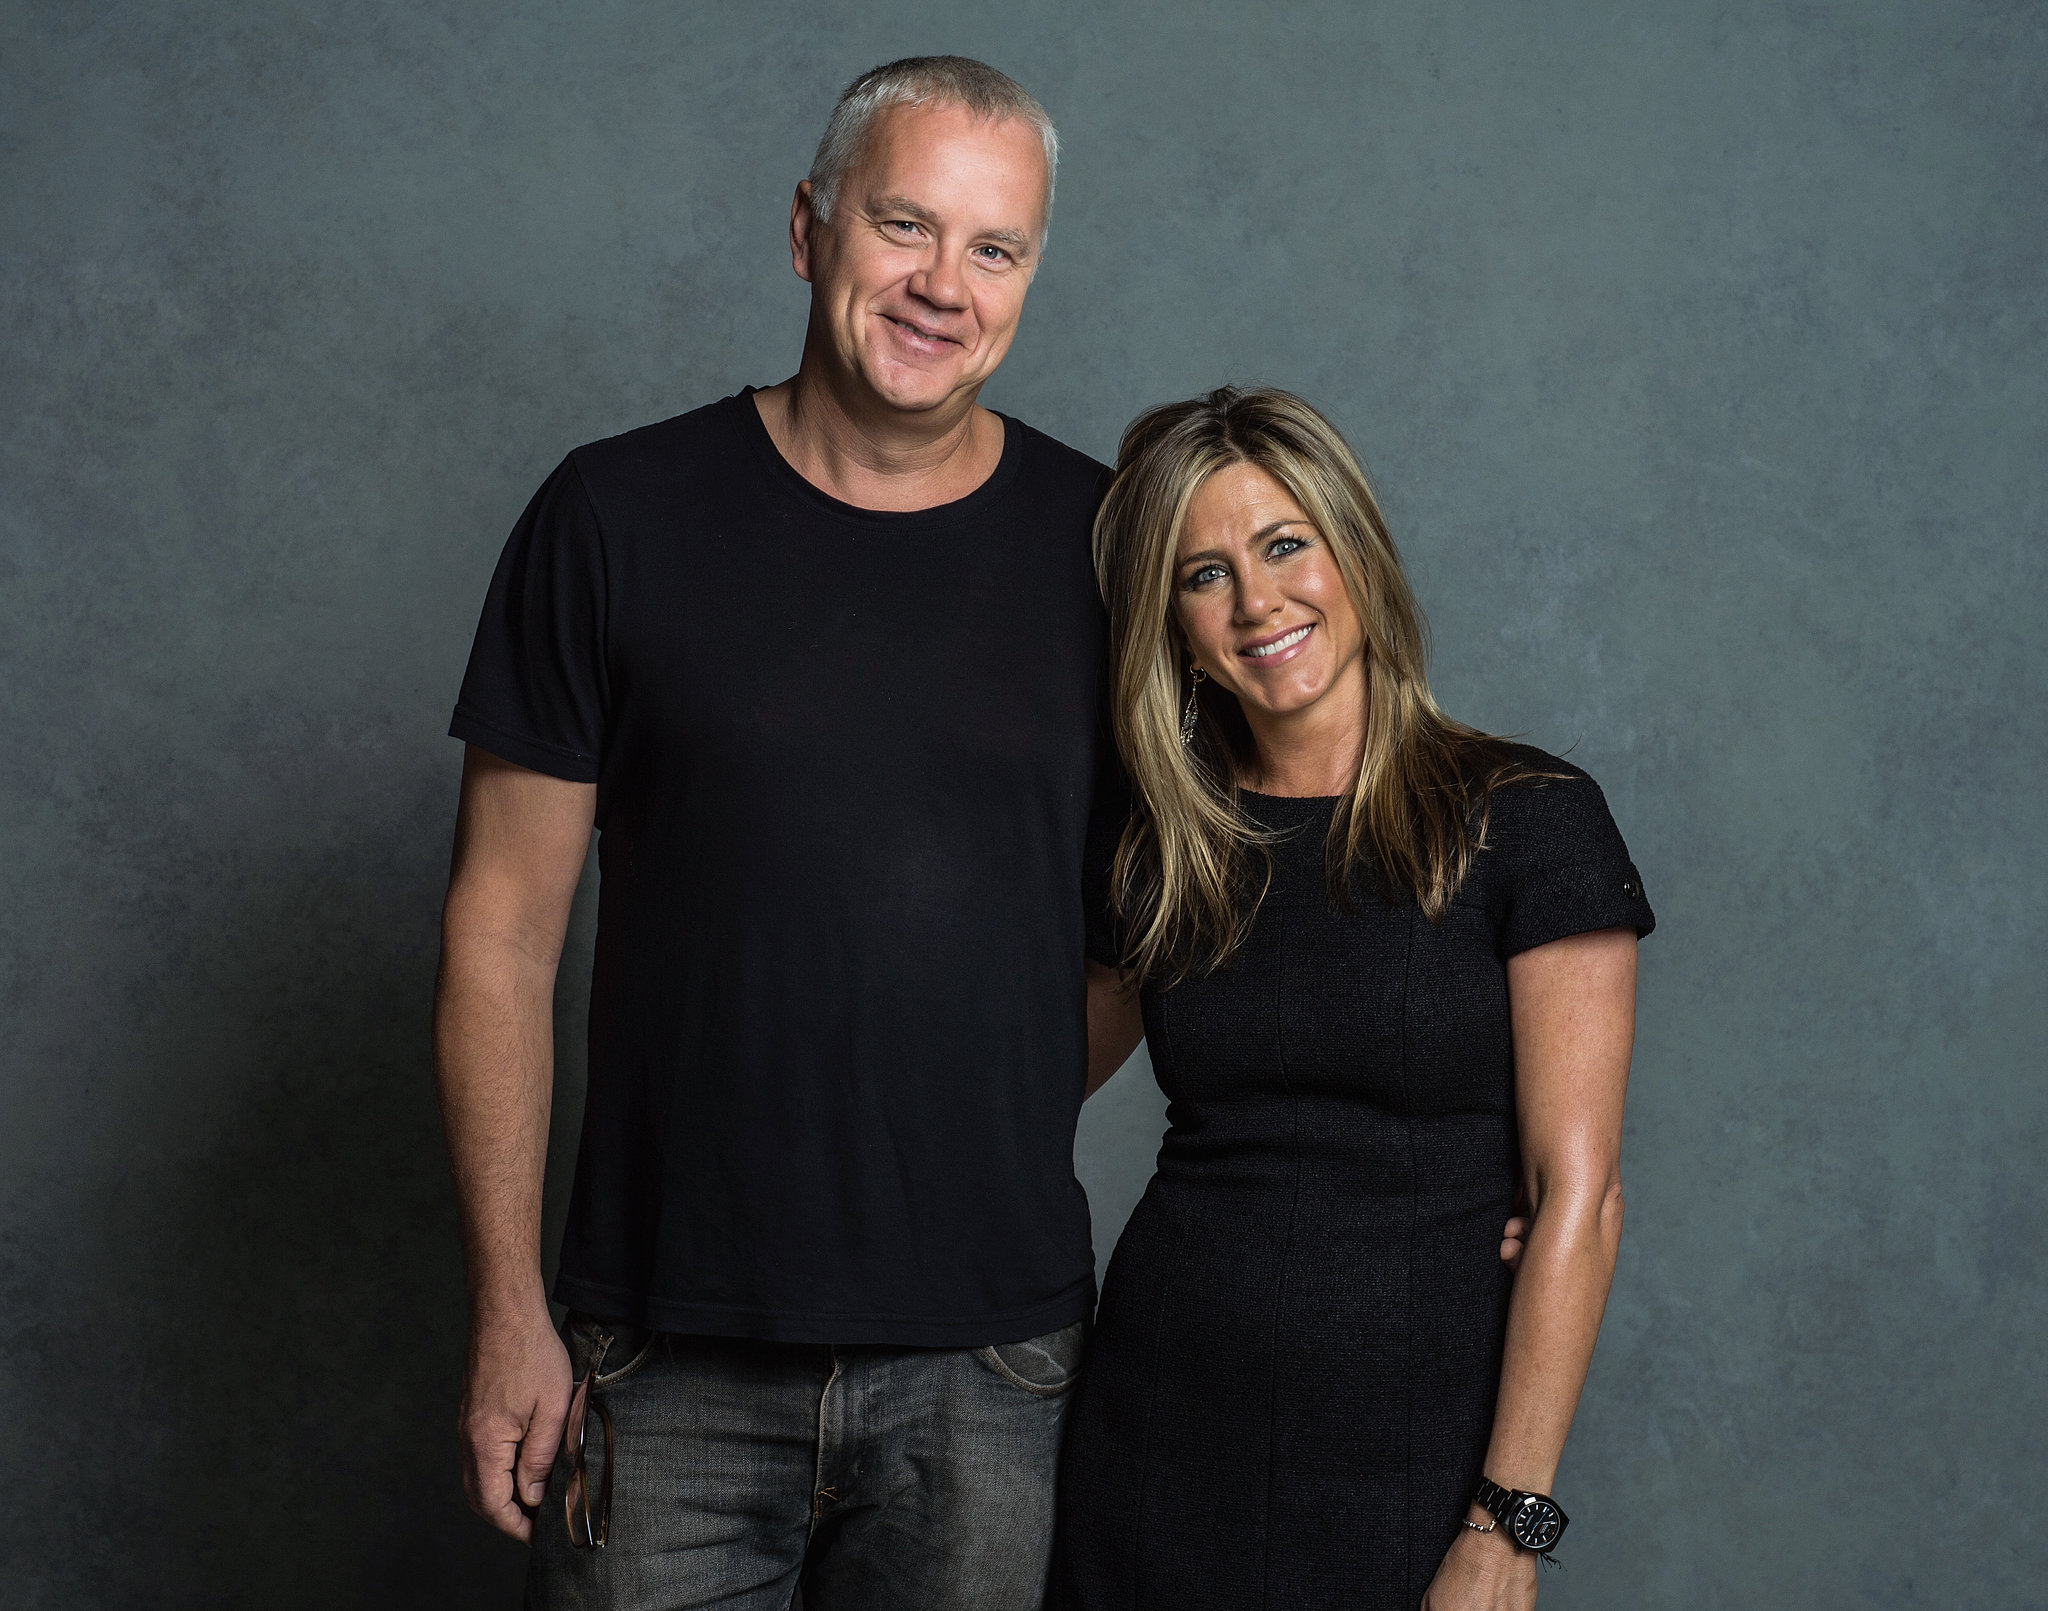 Jennifer Aniston posed with her costar Tim Robbins at the Toronto International Film Festival.